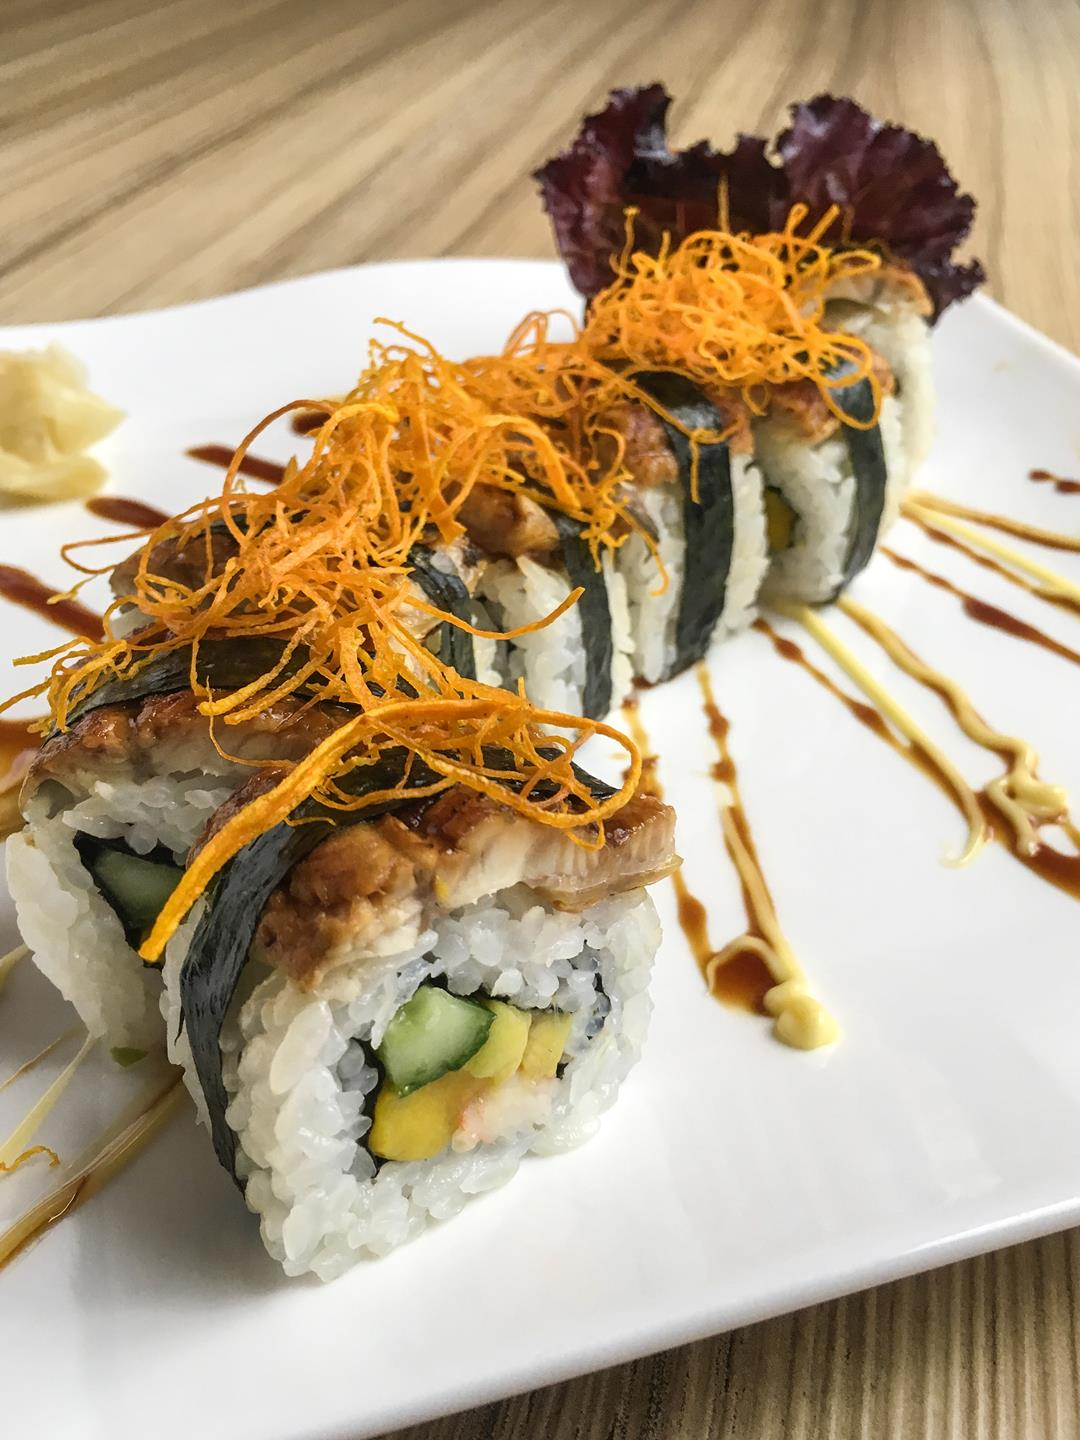 Kitsho's Unagi (eel) rolled sushi is a must-try!